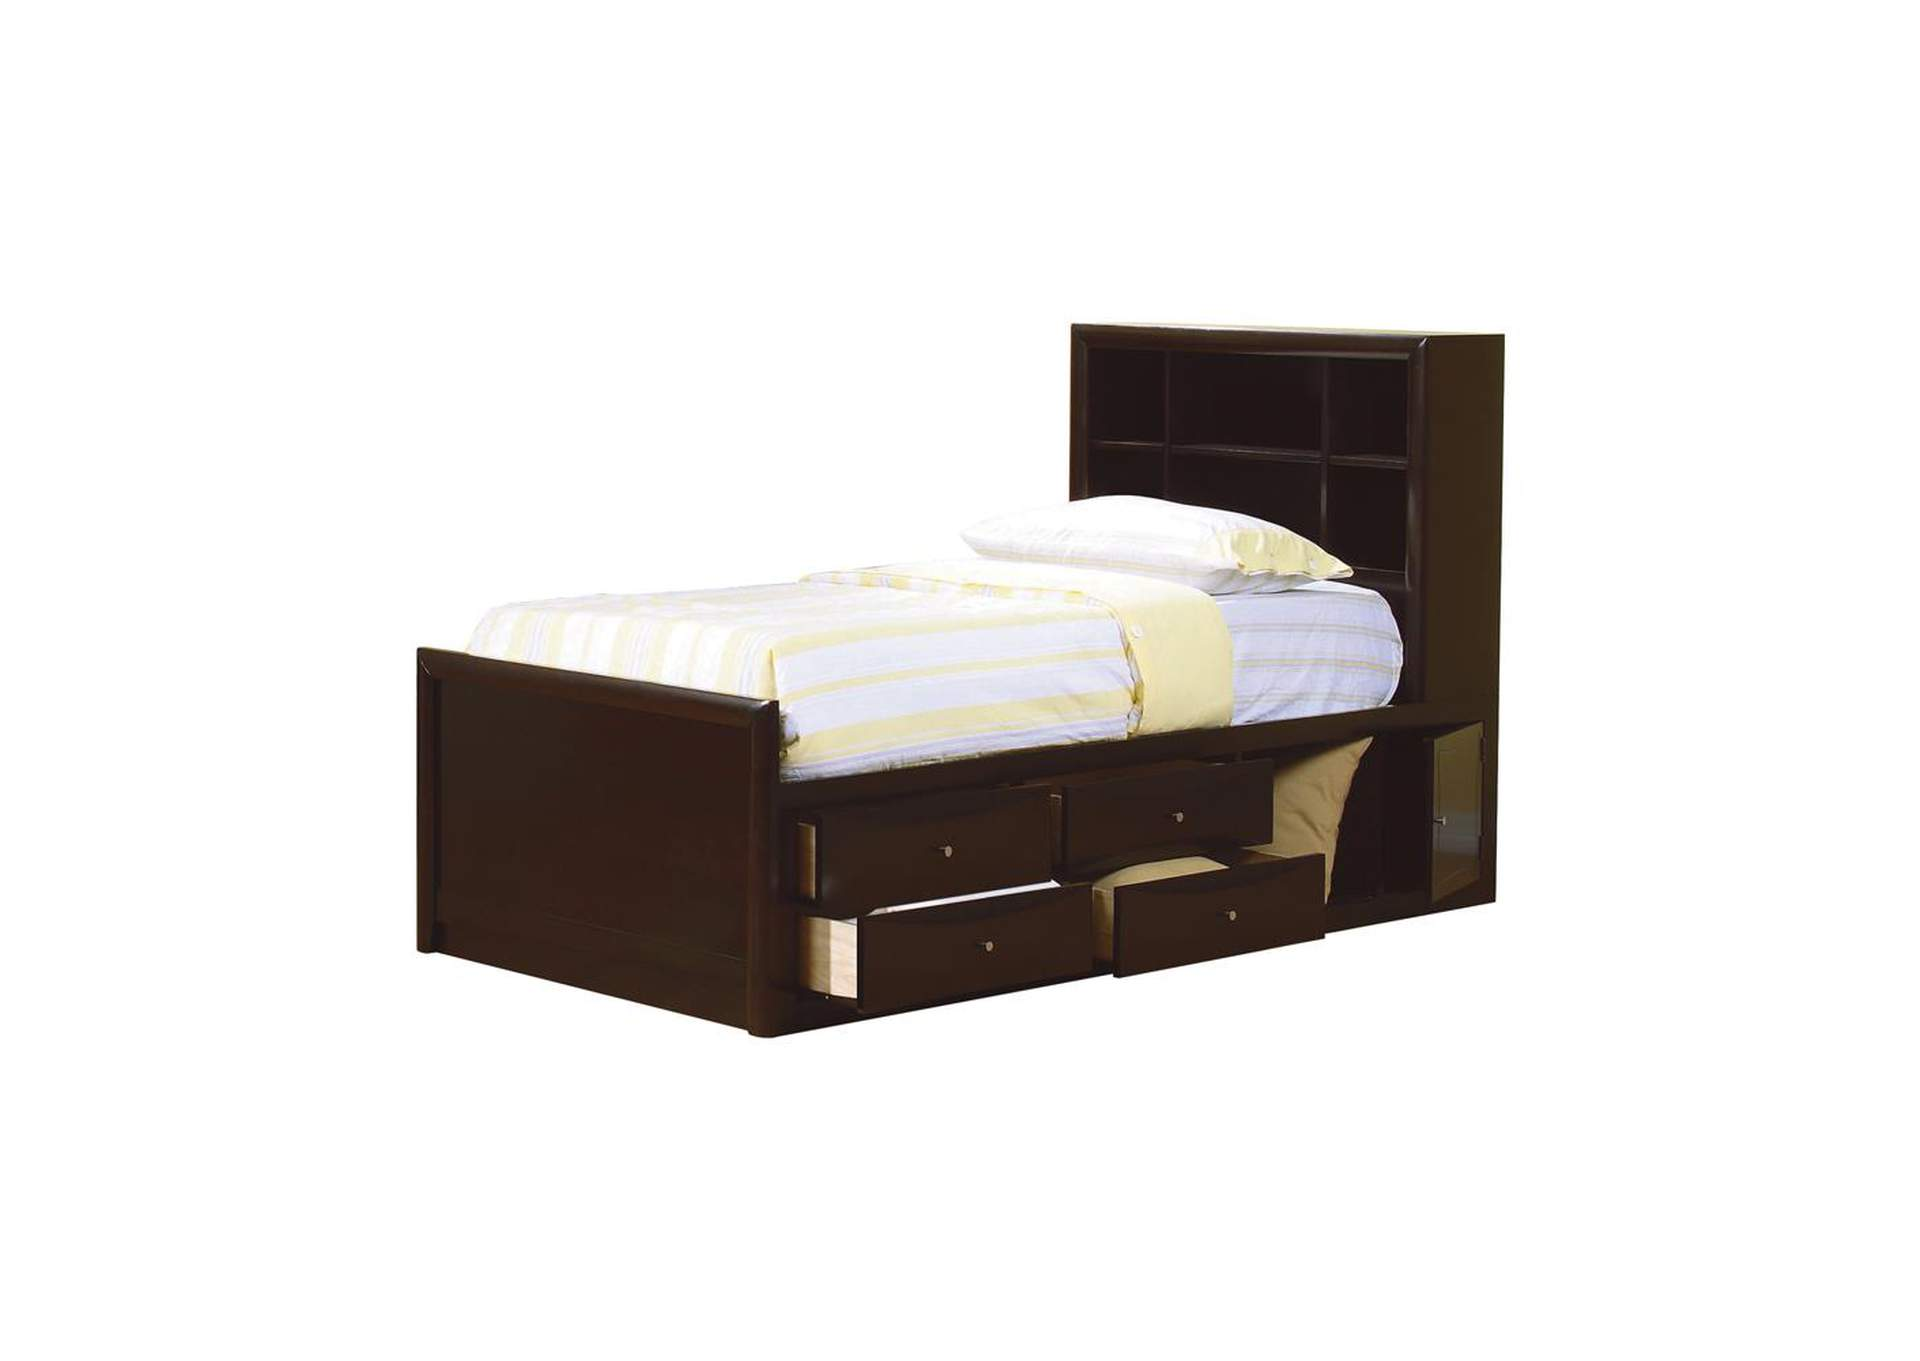 Cappuccino Phoenix Twin Bookcase Bed,Coaster Furniture